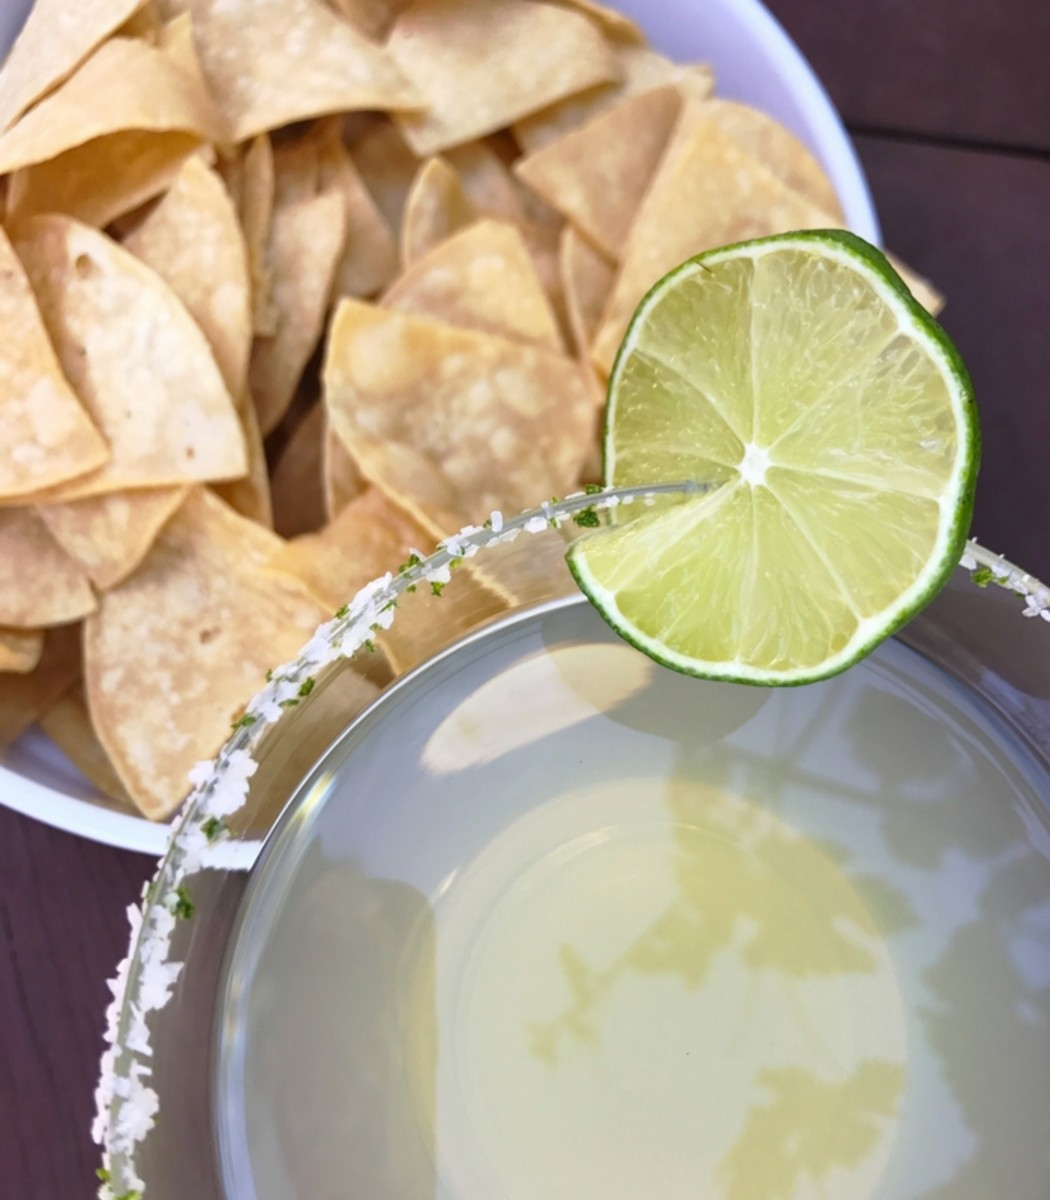 Chips and margarita